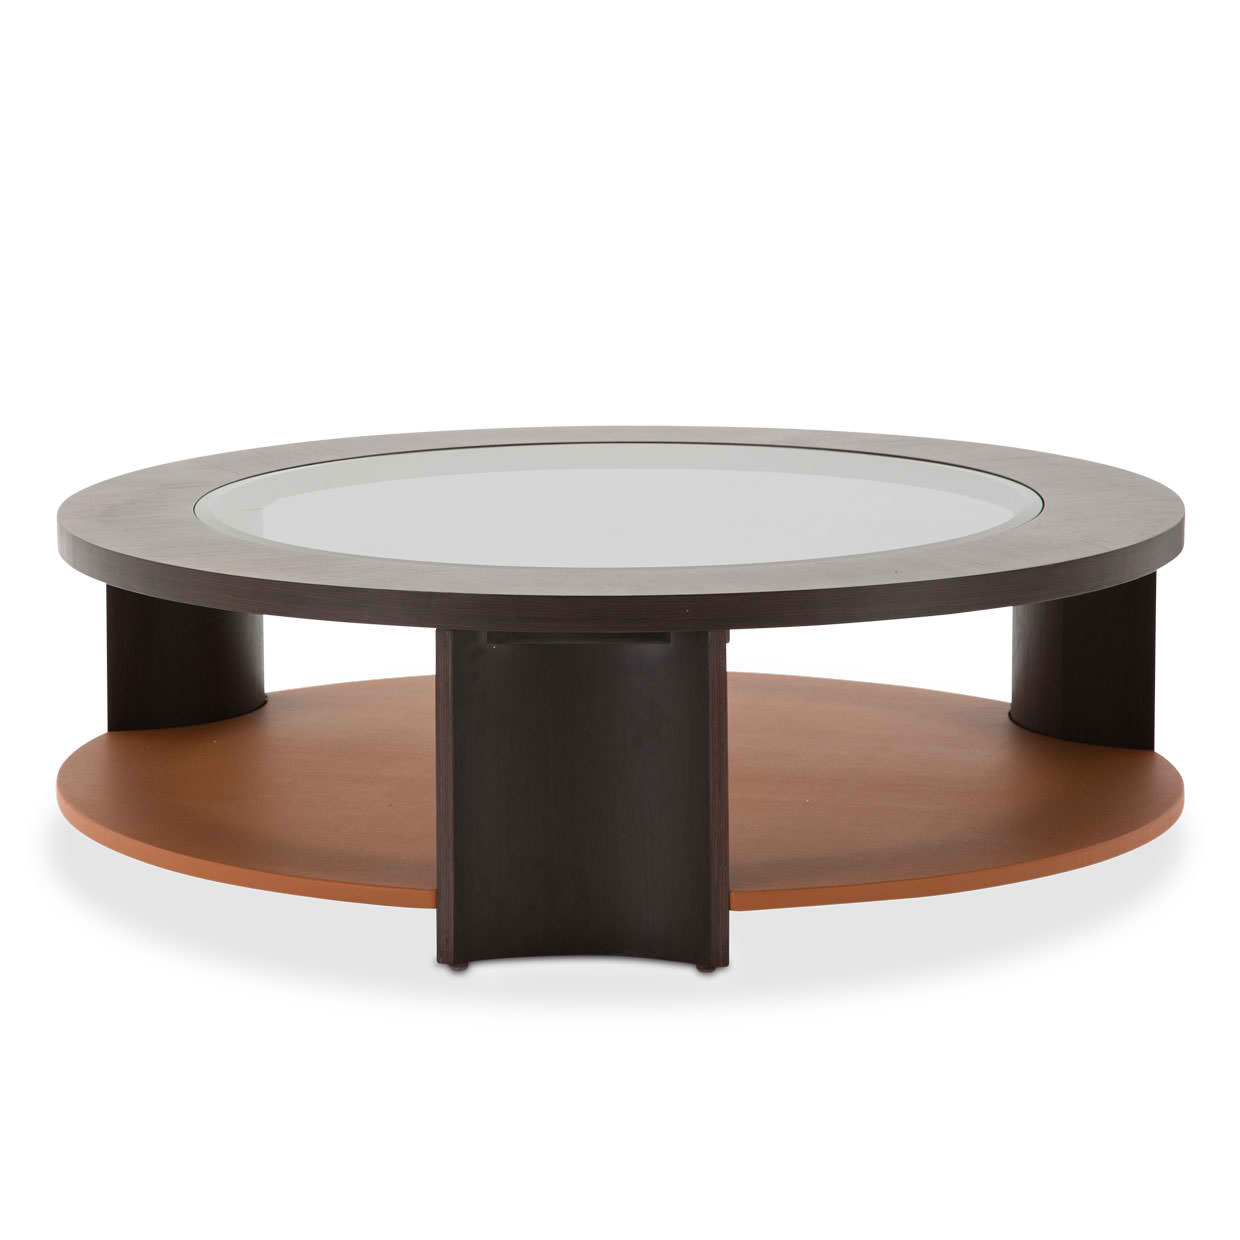 21 Cosmopolitan Round Cocktail Table Diablo Orange Umber Living Story